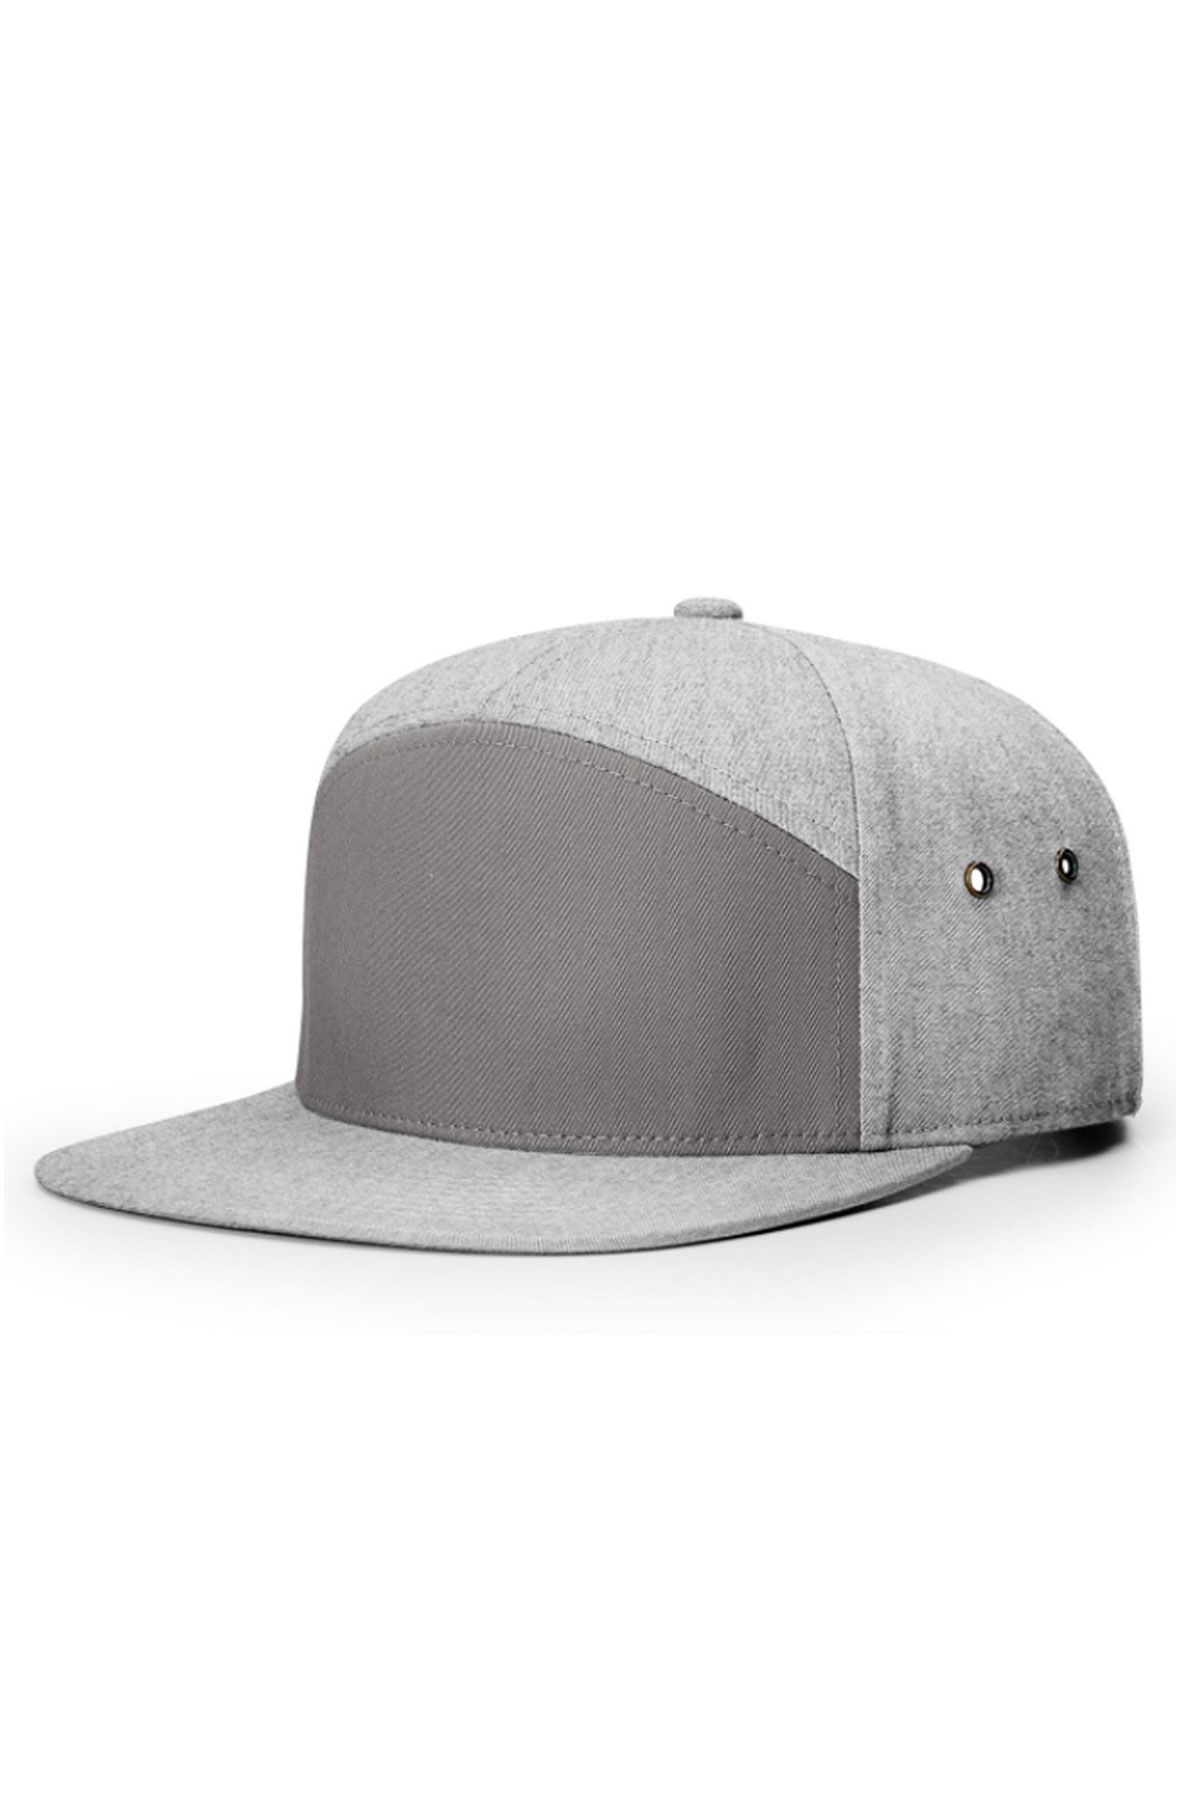 Image of Twill Leather Strapback in Heather Gray